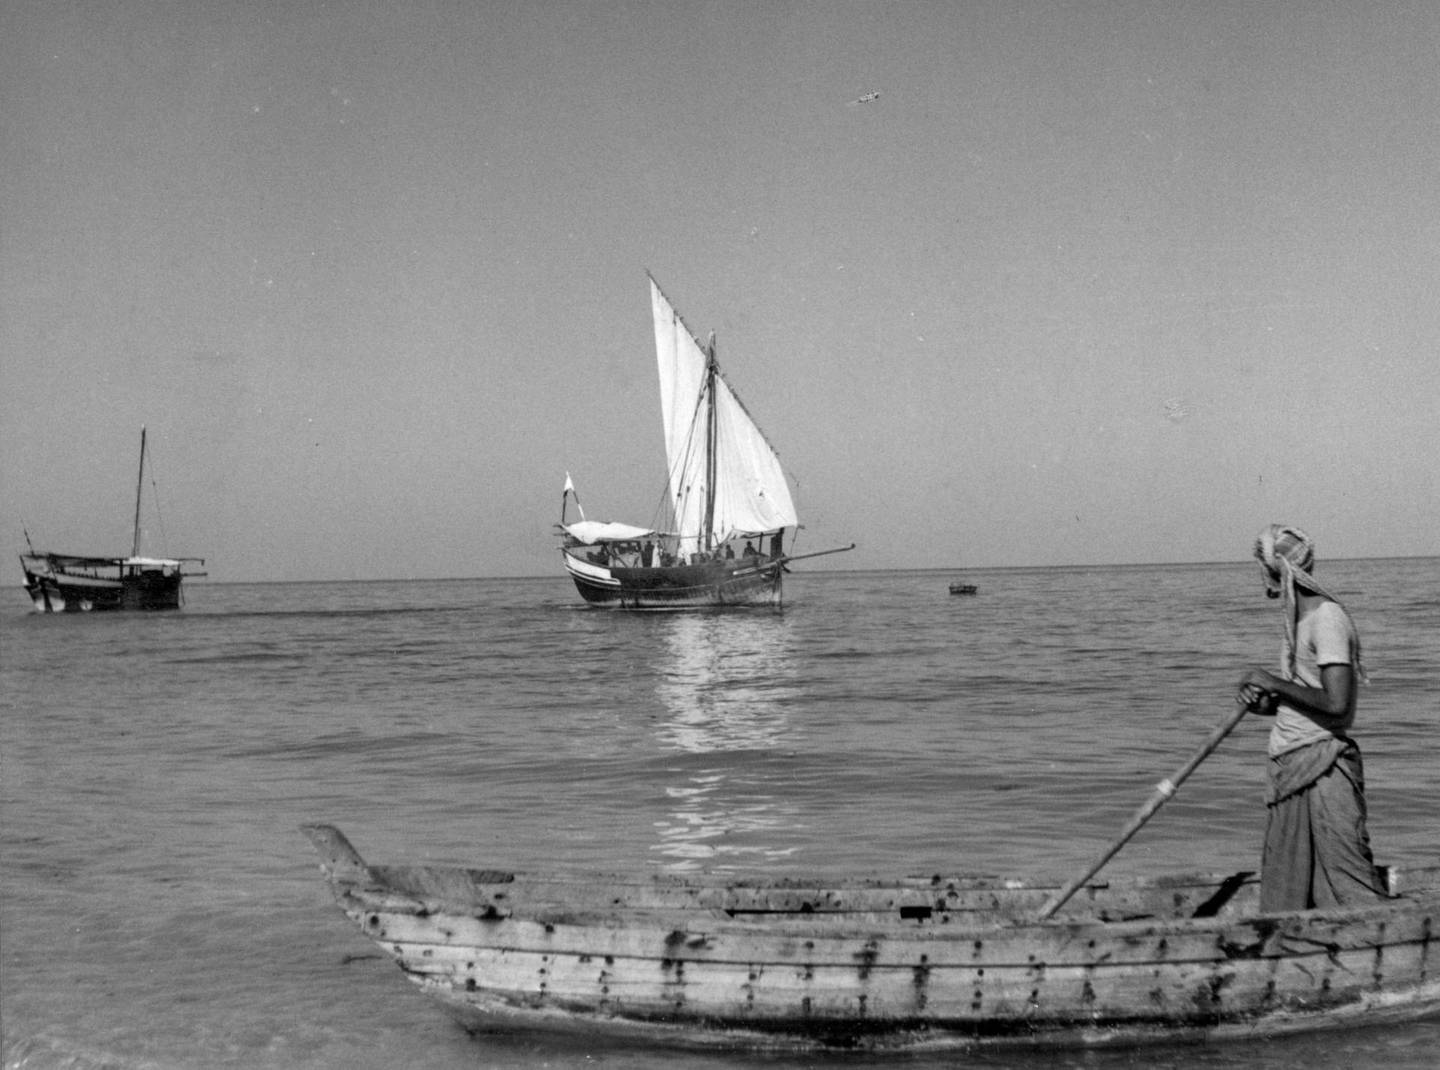 Abu Dhabi, Trucial States; Undated (late 1950 s, early 1960 s)  Photograph showing dhows off the coast of Abu Dhabi Courtesy BP Archive. Mandatory Credit.  Eds note. Karen  ** Free usage but  email BP Abu Dhabi to notify of publication** Nick.Cochrane-Dyet@se1.bp.co